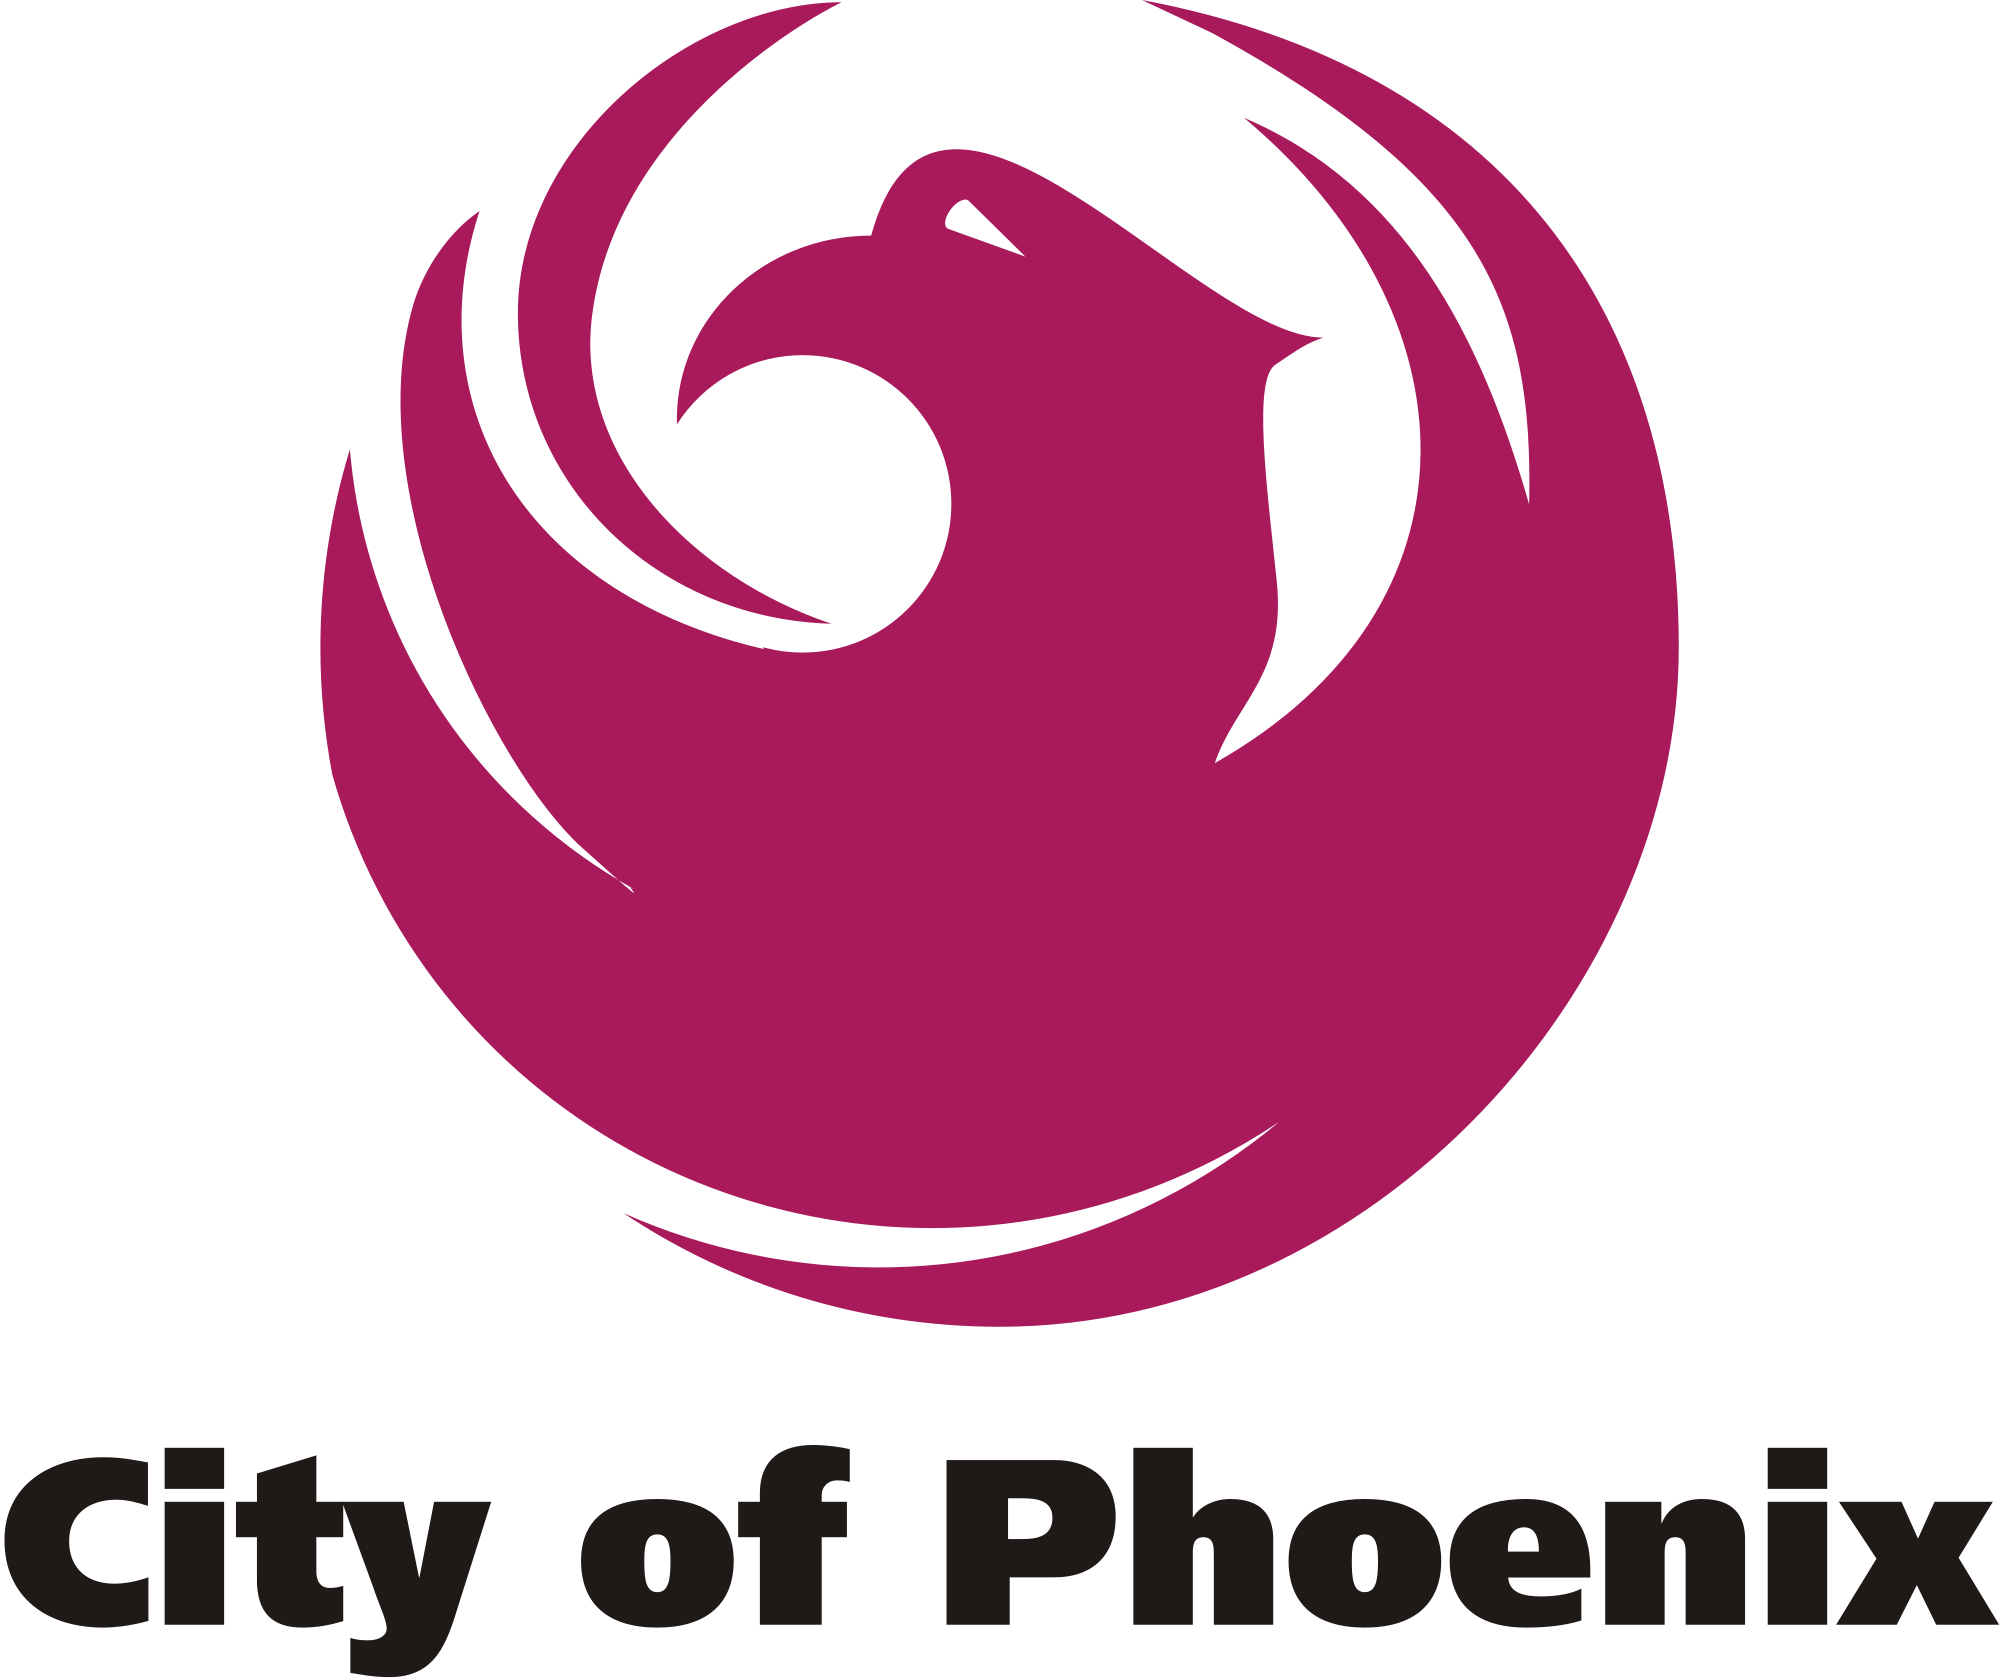 City of Phoenix.png